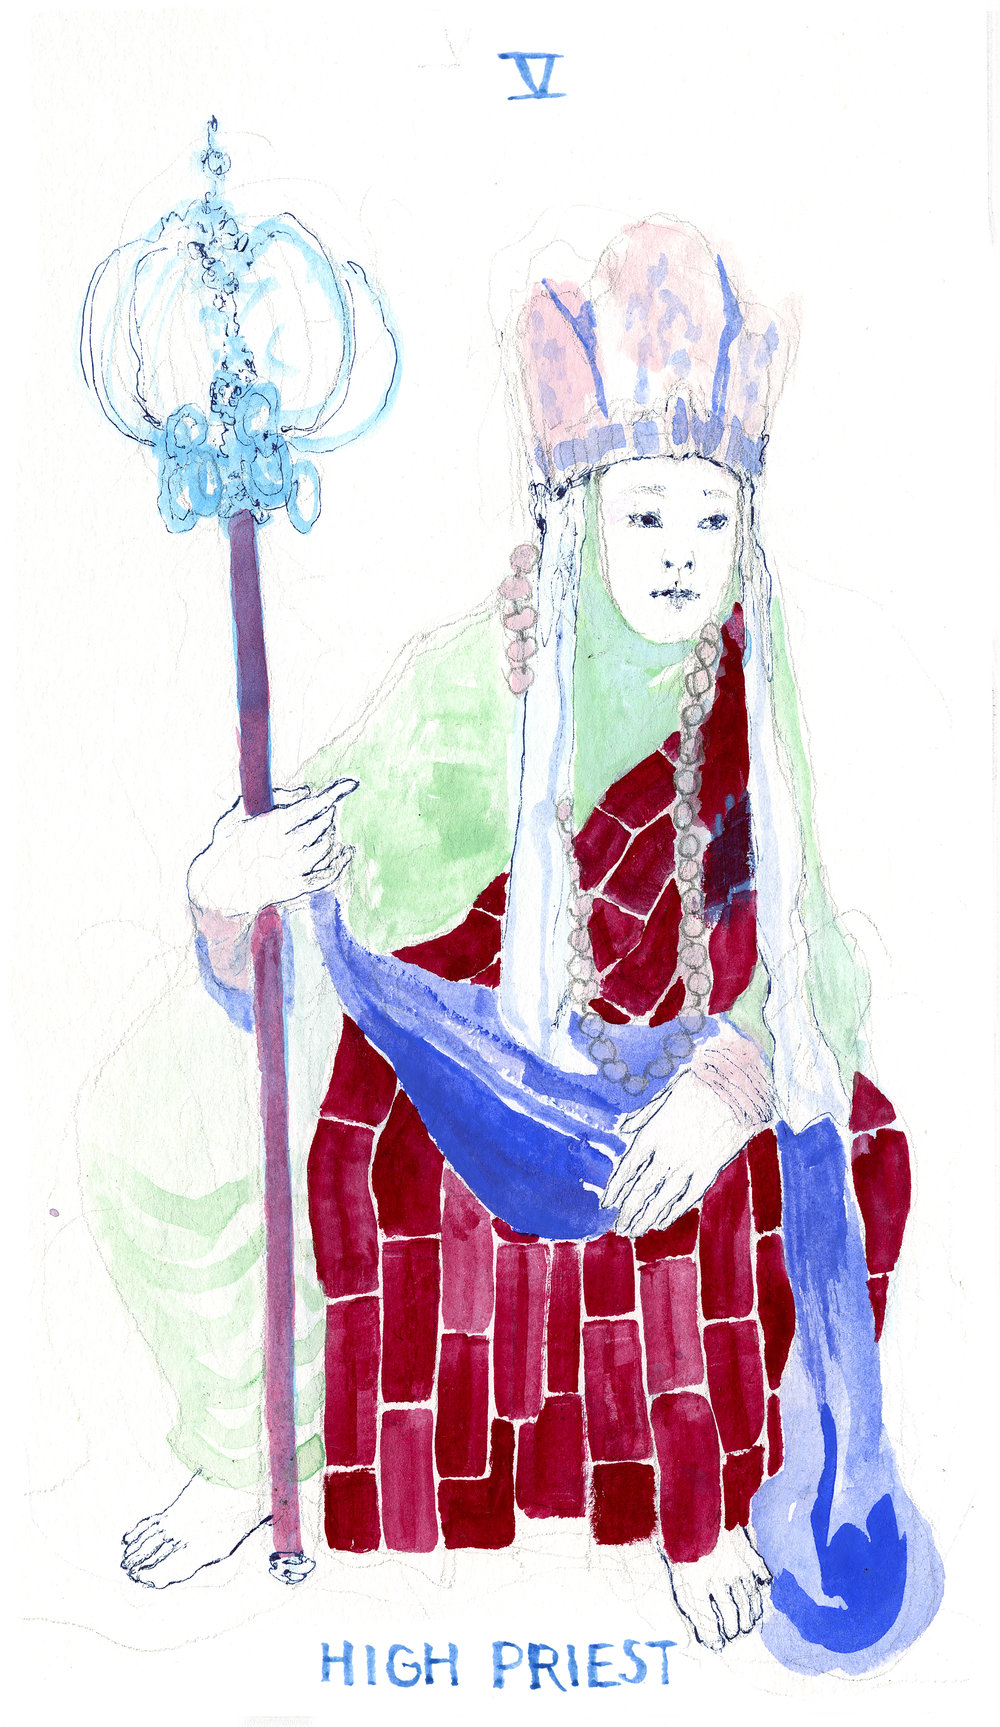 5-hierophant copy.jpg